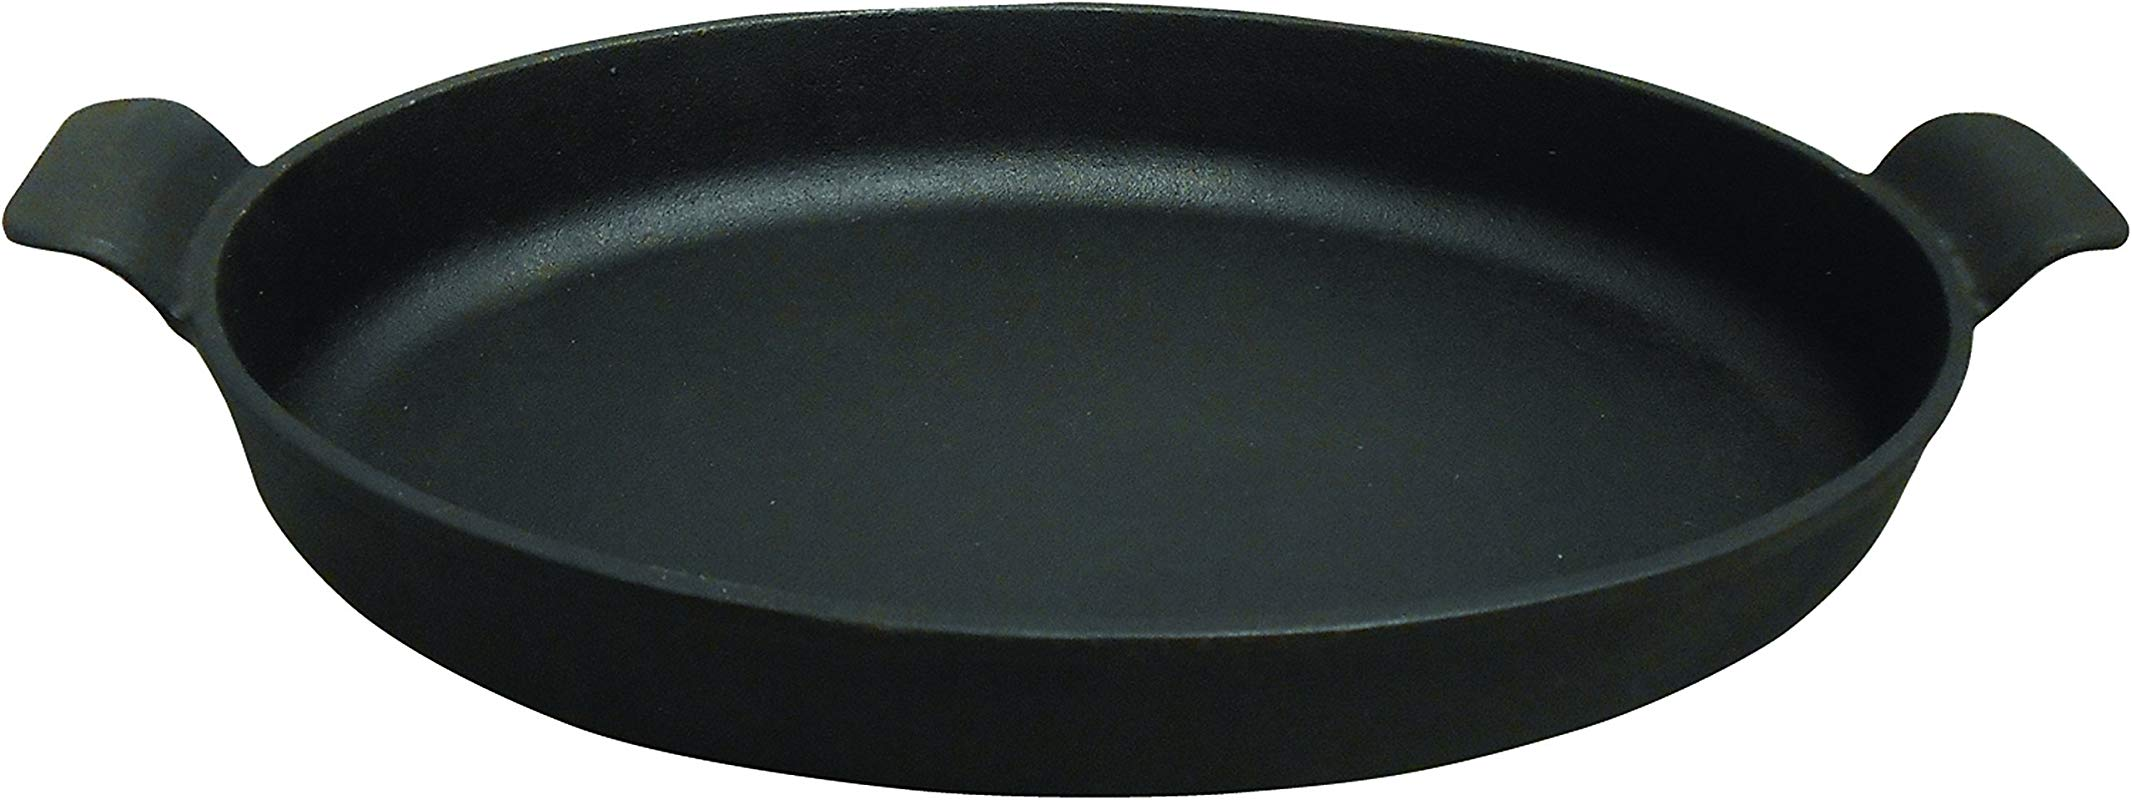 King Kooker CIOR14S Pre Seasoned Cast Iron Oval Roasting Pan